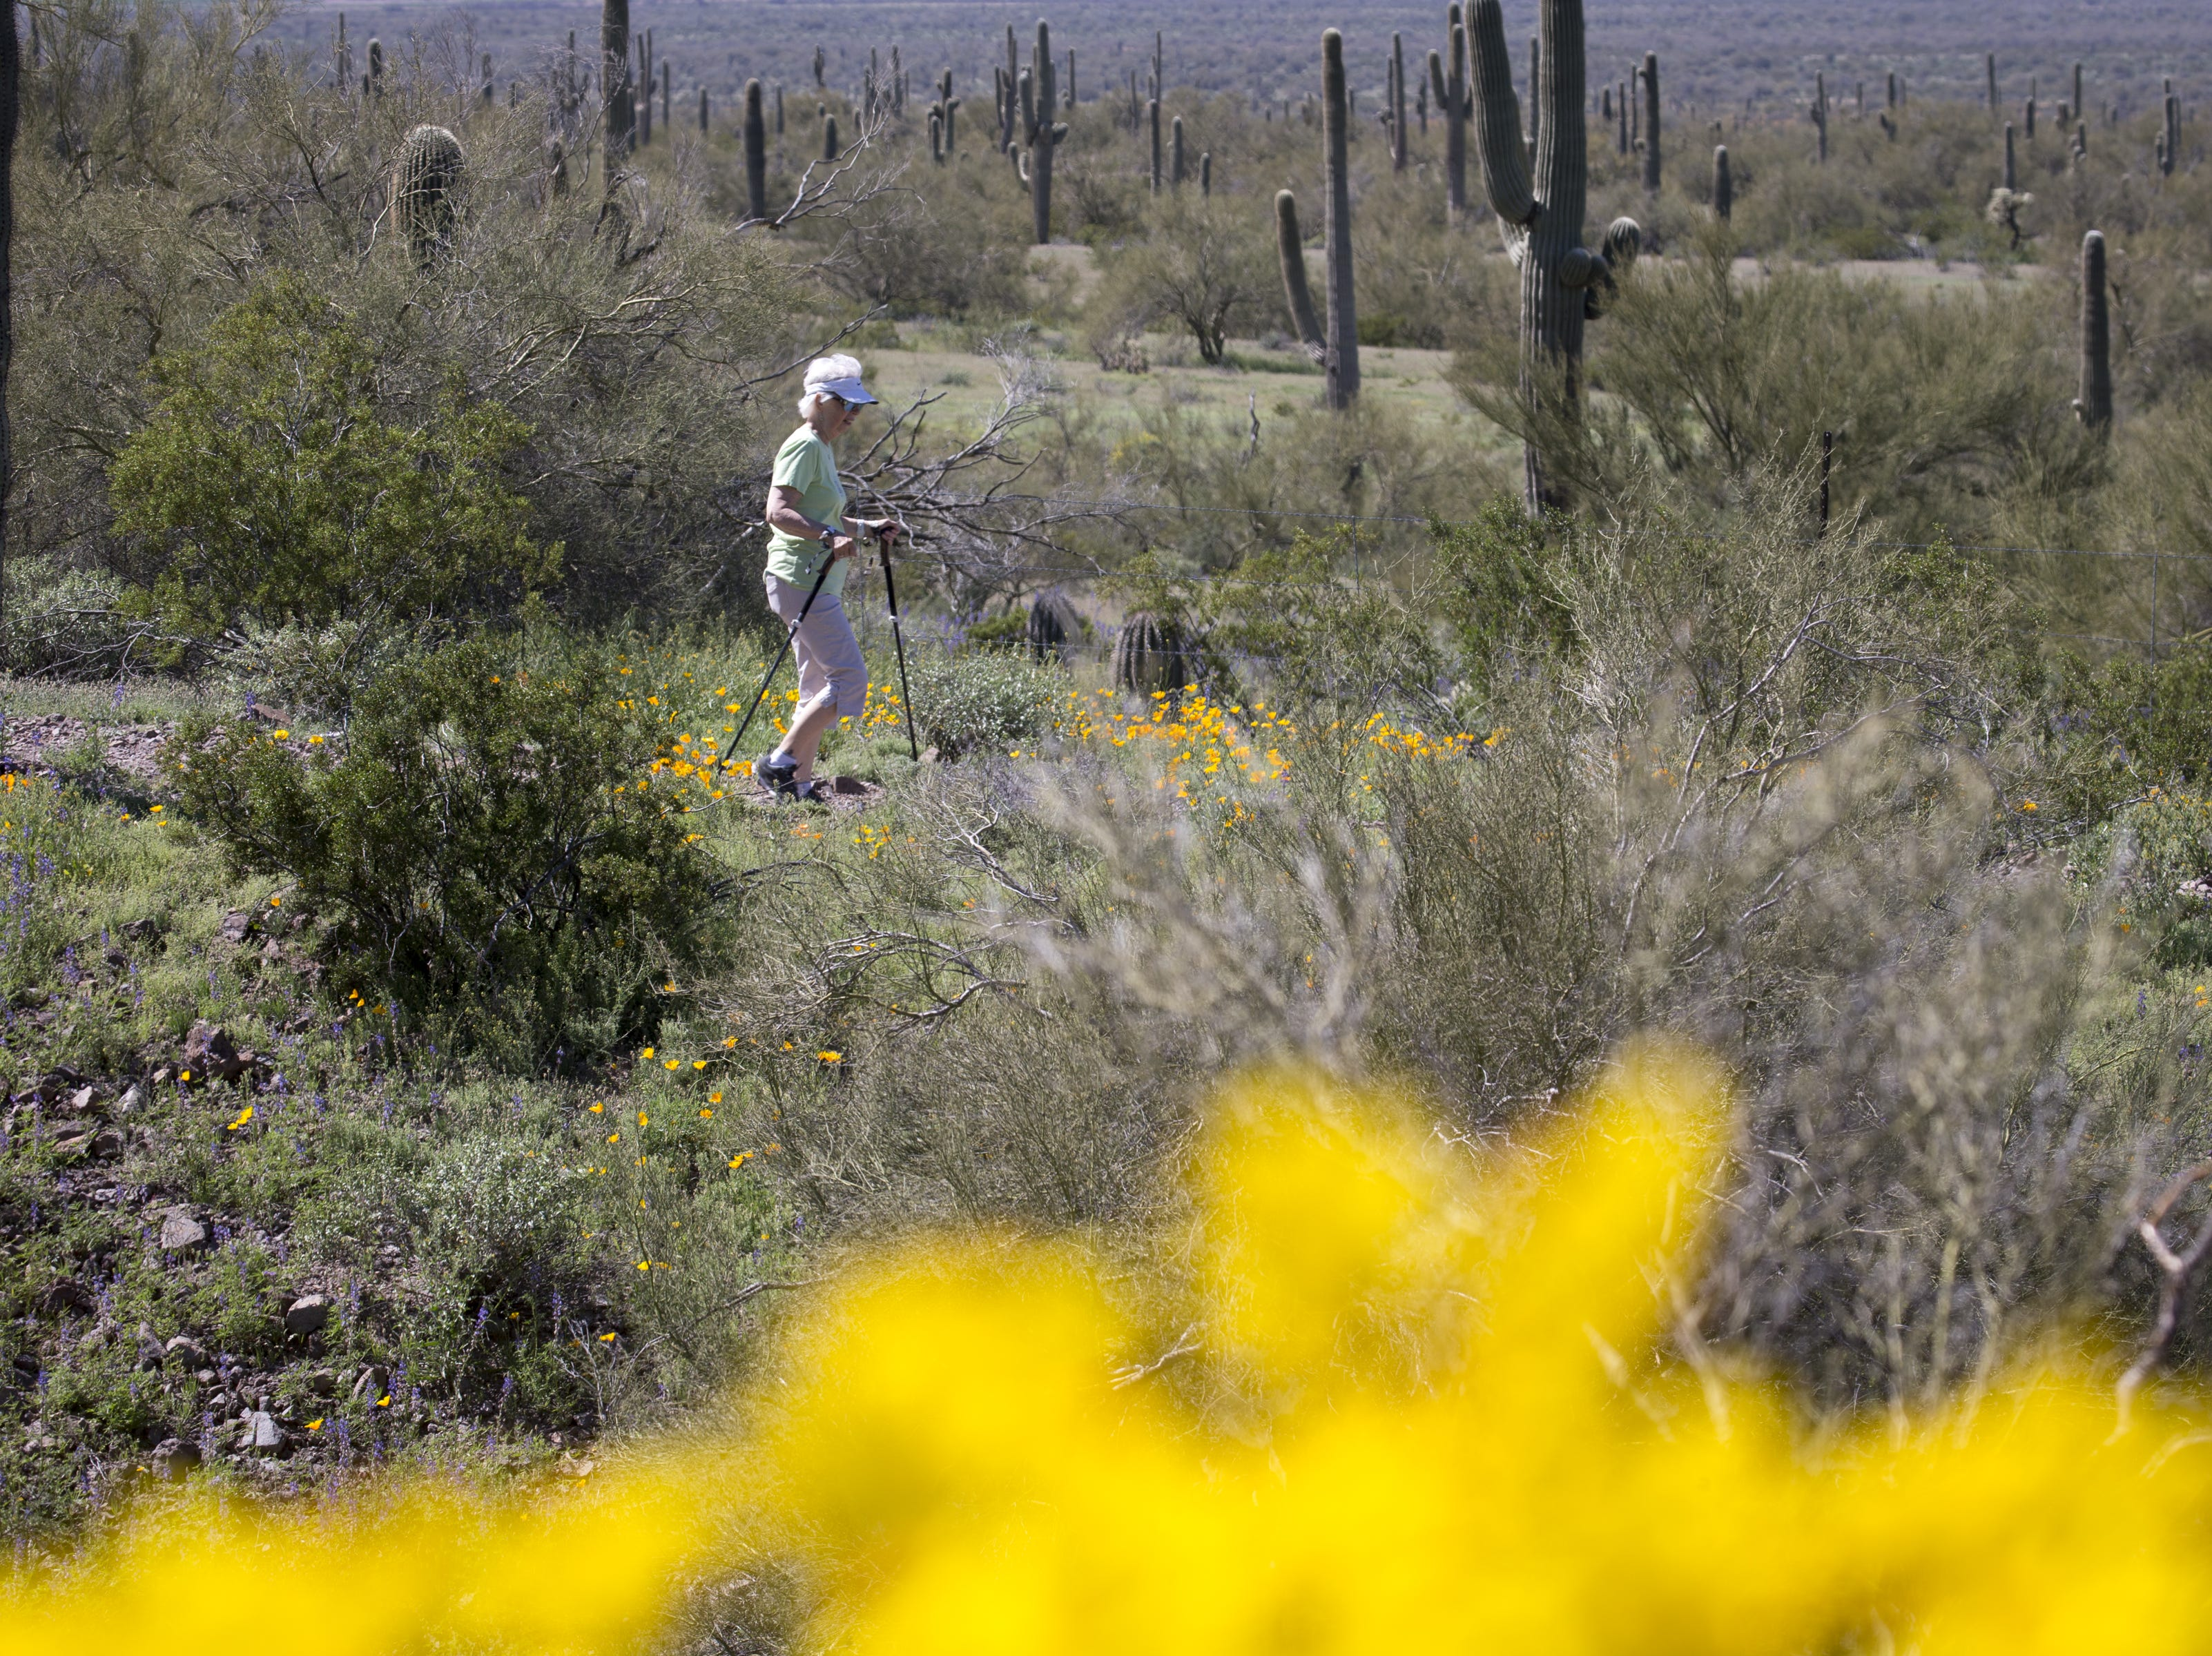 A visitor hikes on the Sunset Vista Trail, March 5, 2019, at Picacho Peak State Park, Arizona.